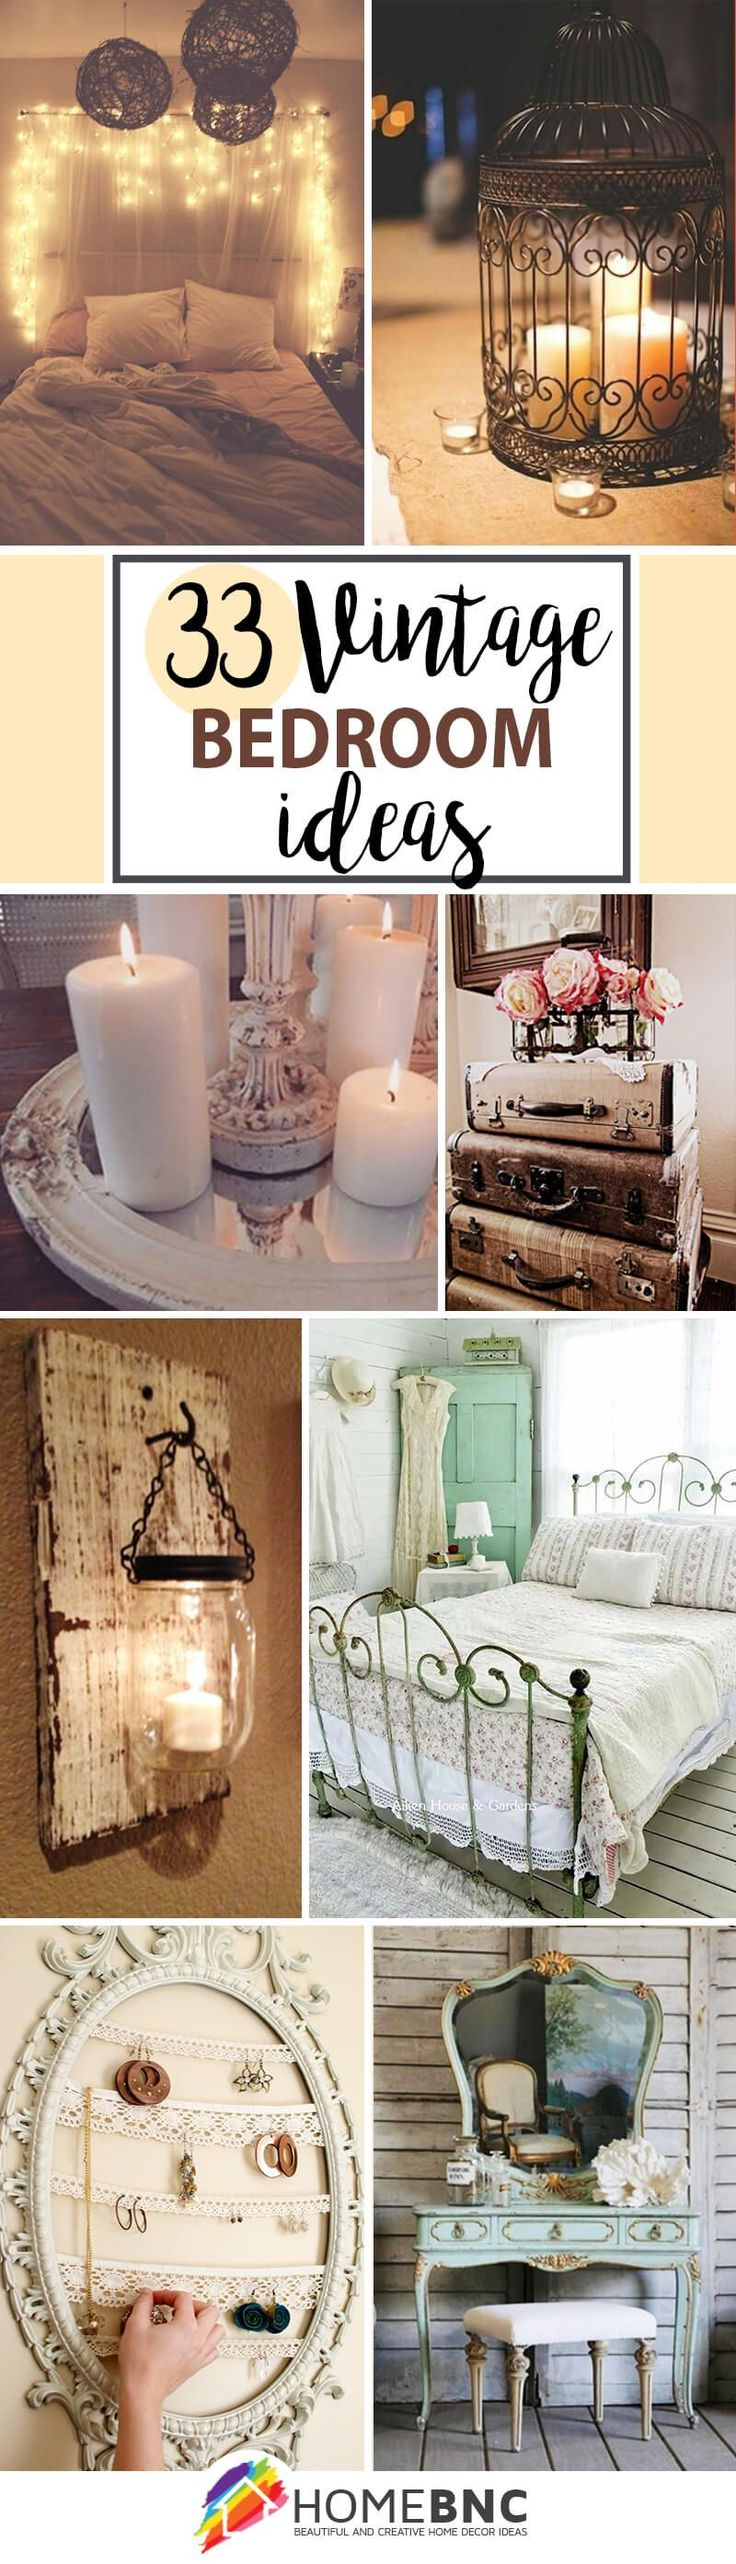 best 25 bedroom decorating ideas ideas on pinterest dresser best 25 bedroom decorating ideas ideas on pinterest dresser ideas restored dresser and upcycled furniture